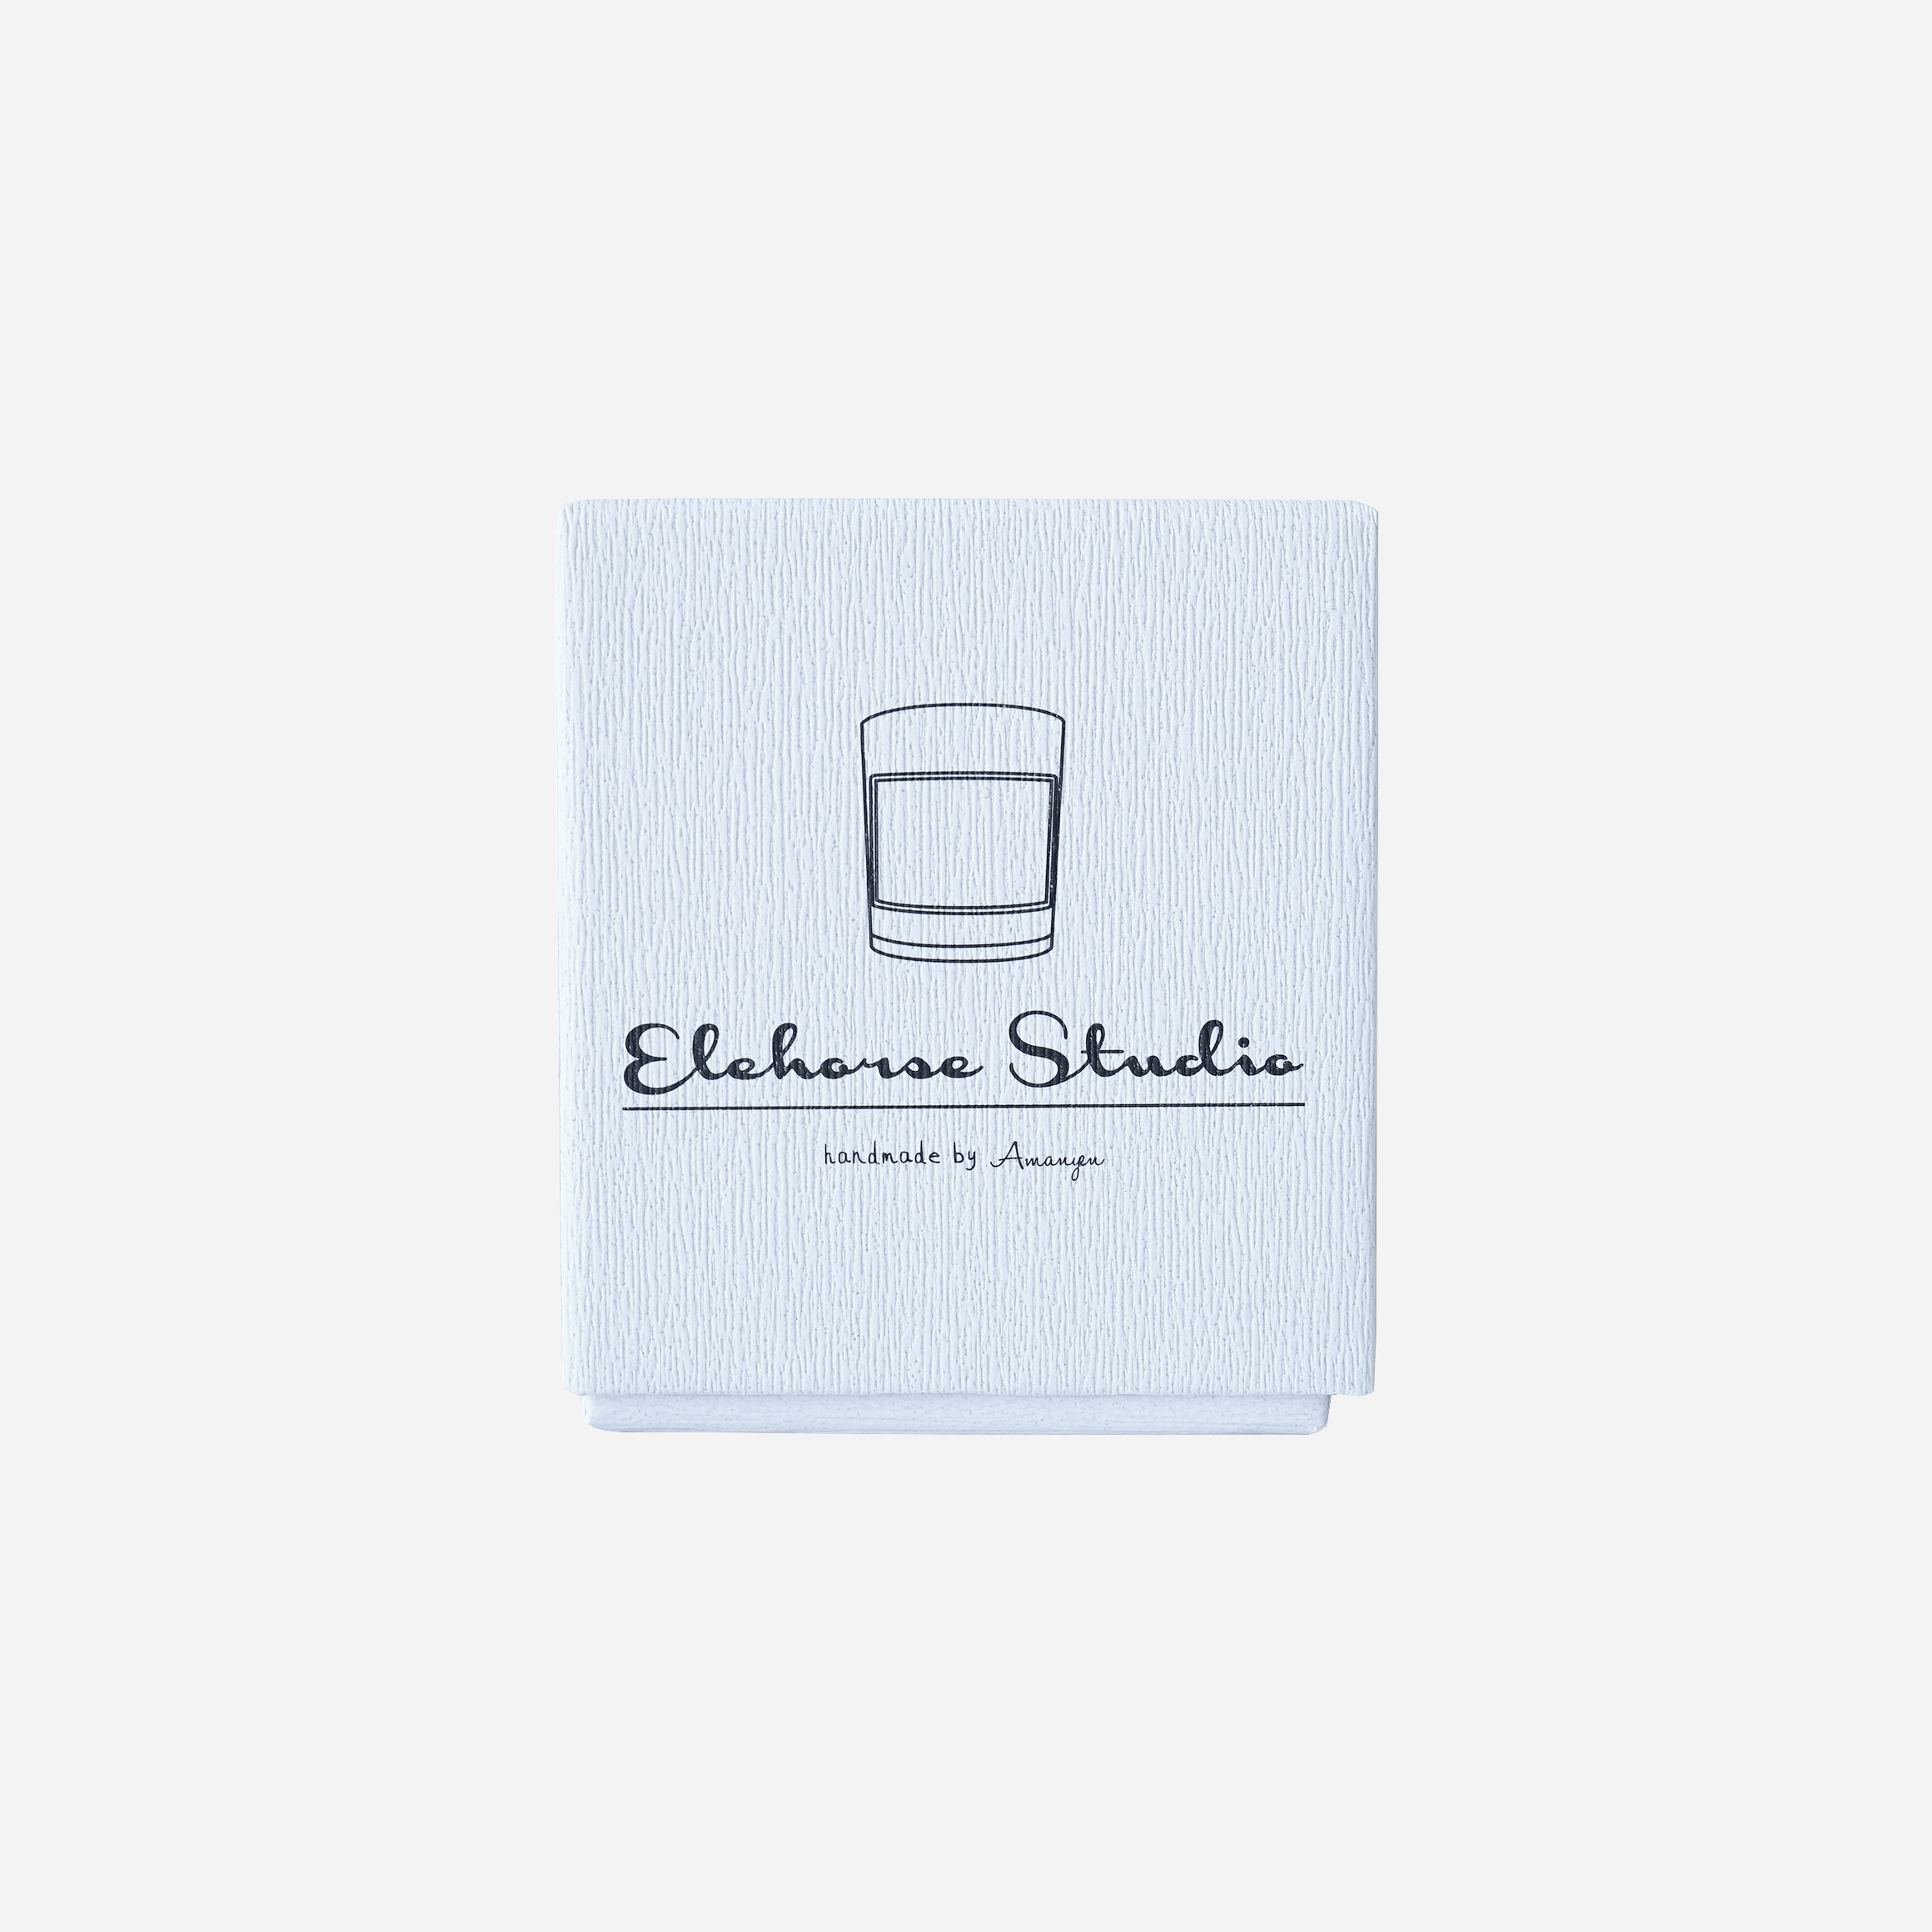 ElehorseStudio 香薰蜡烛Scented Candle No.1-6 MT.